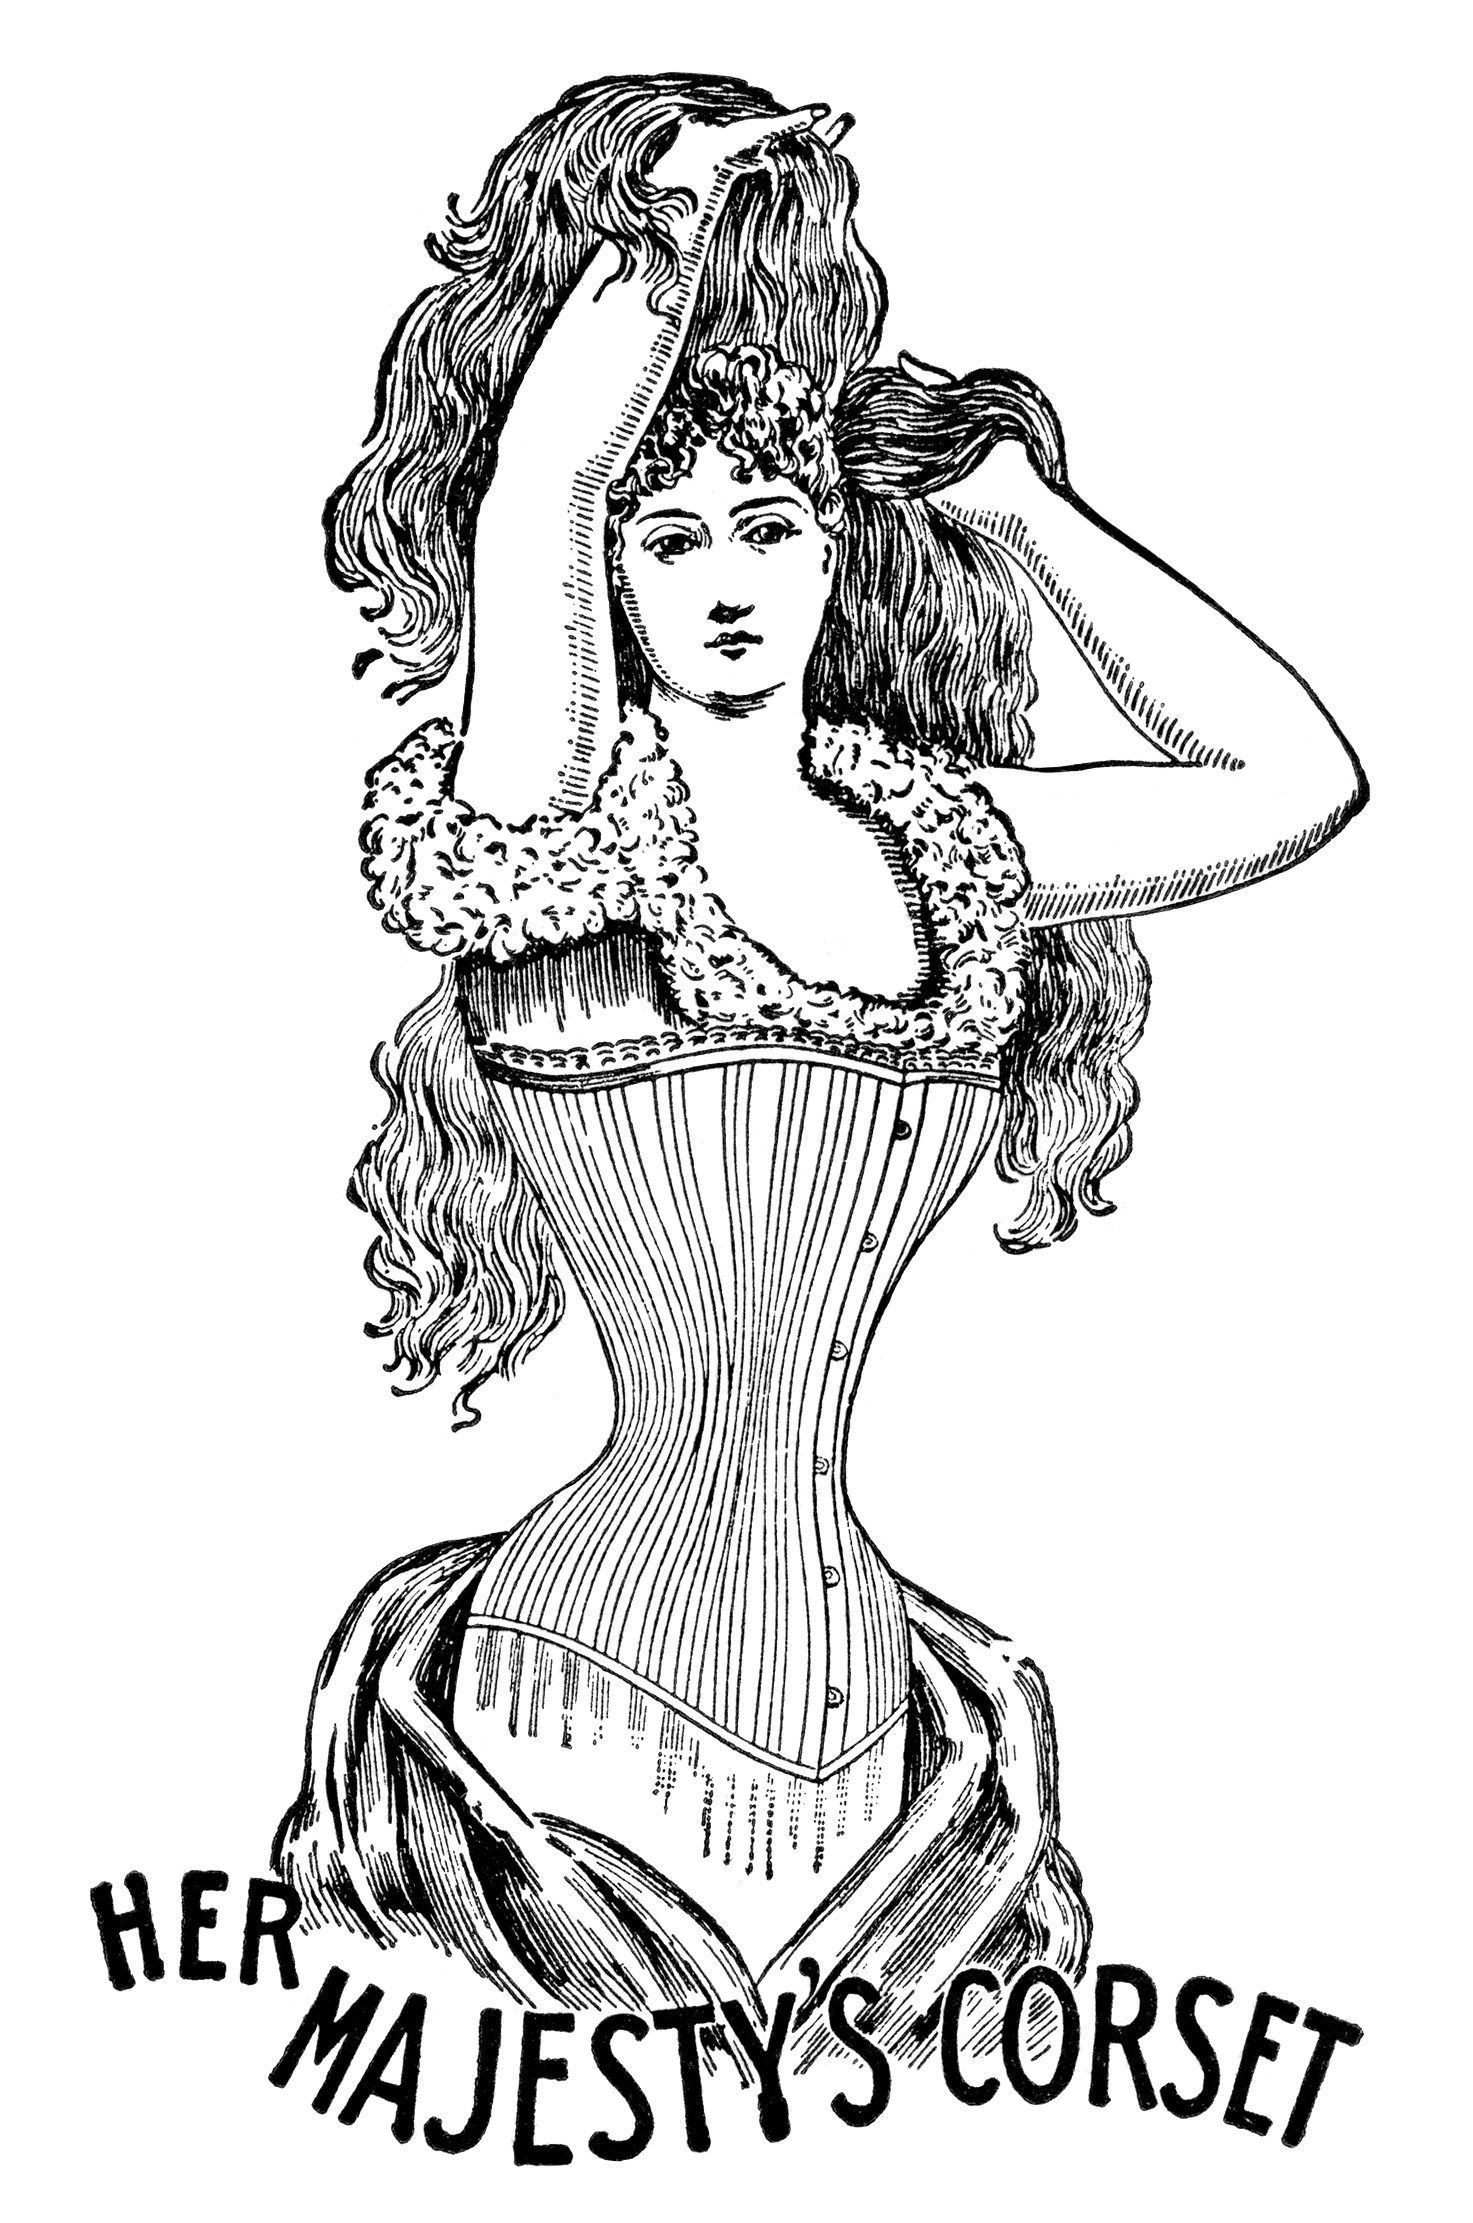 Woman corset clipart clipart royalty free library her majesty\'s corset, black and white clipart, vintage ... clipart royalty free library